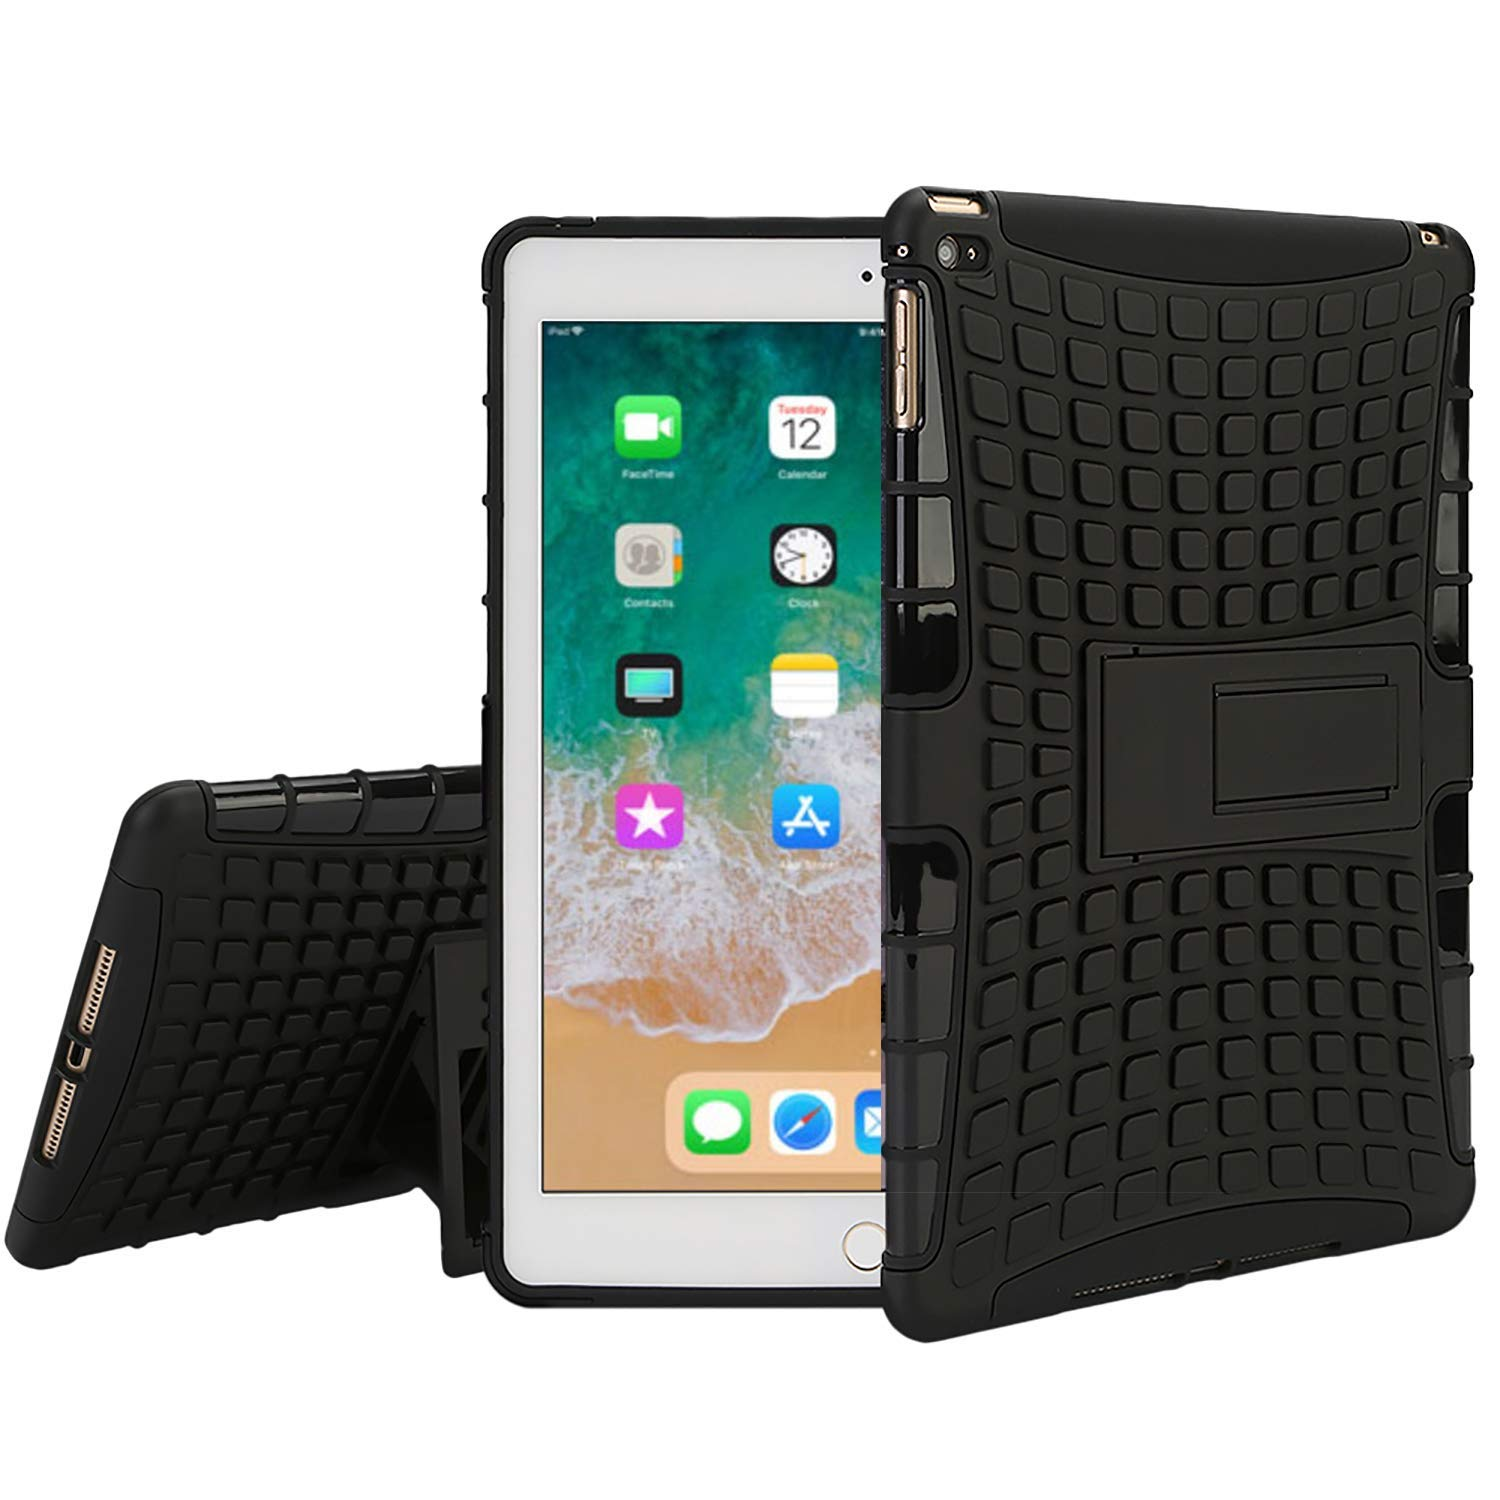 "iPad Pro 9.7 Shockproof Case,Hybrid Case for 9.7/"" iPad Pro 9.7 with Kickstand"